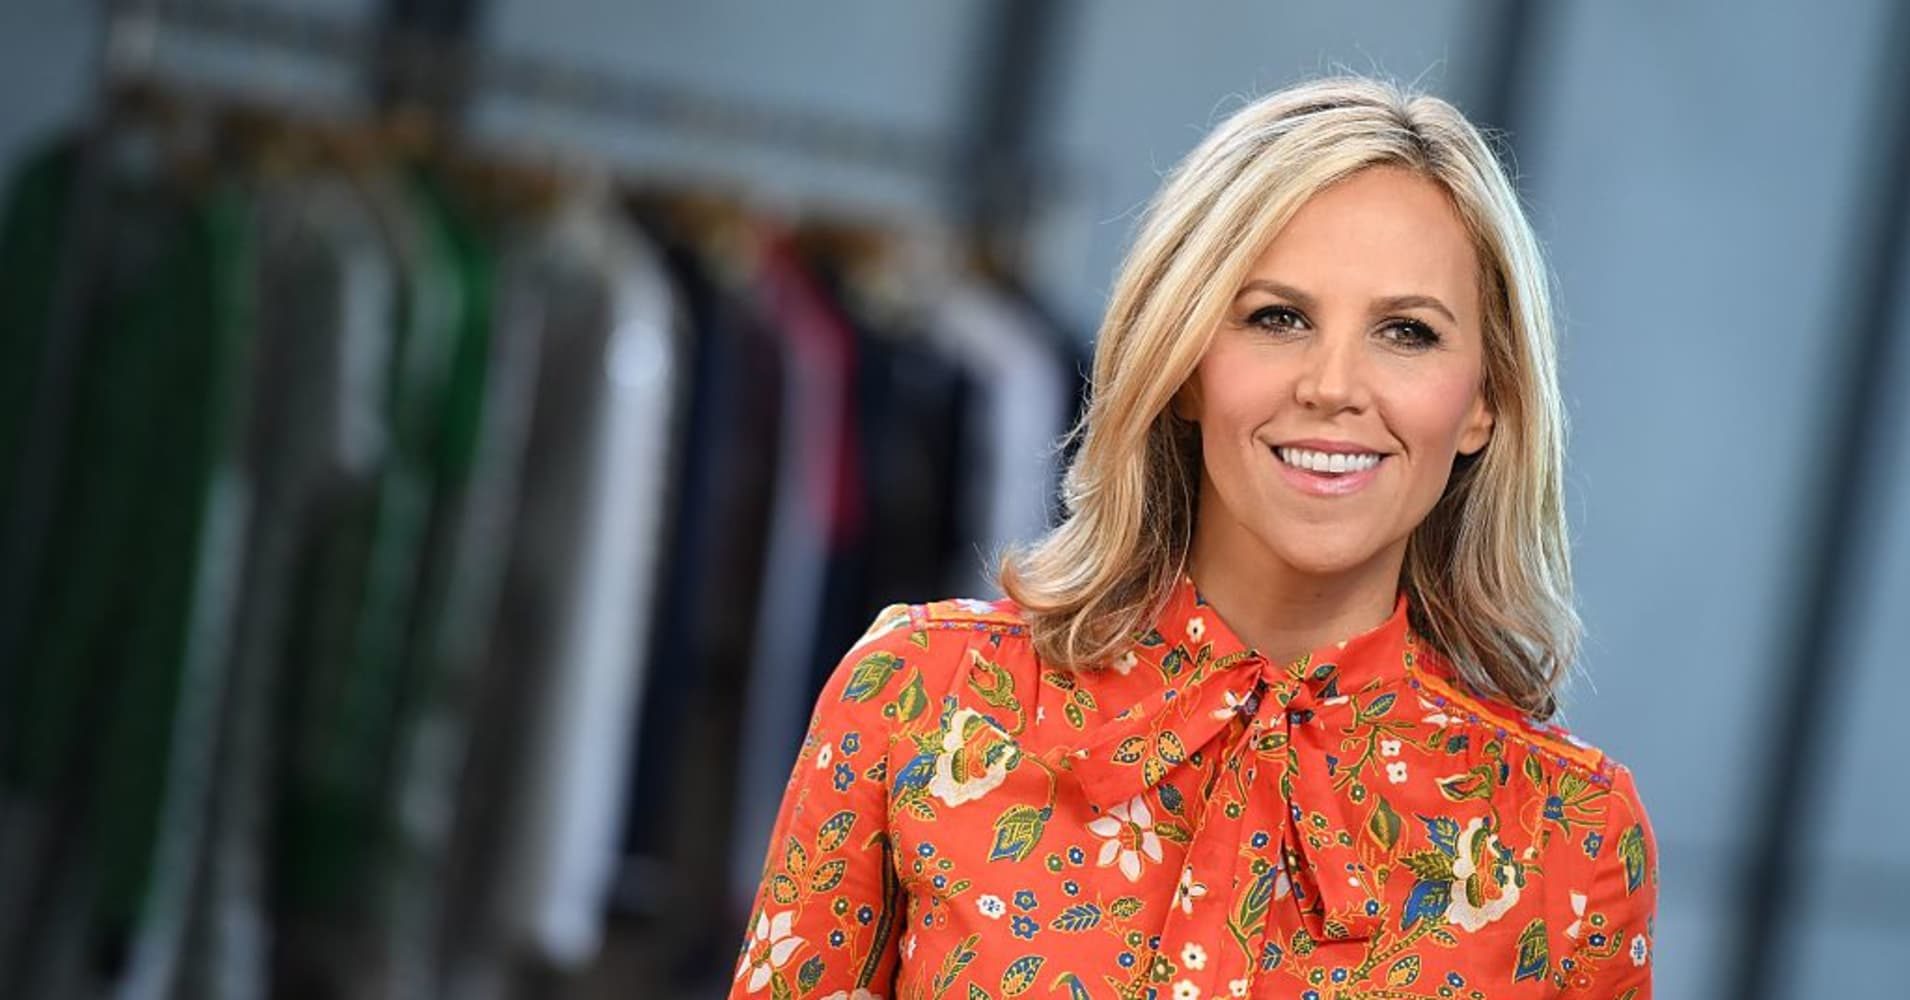 · In a brief interview with Tory Burch, CEO and designer of American lifestyle brand Tory Burch and founder of the Tory Burch Foundation, we discussed the launch, evolution and impact of .